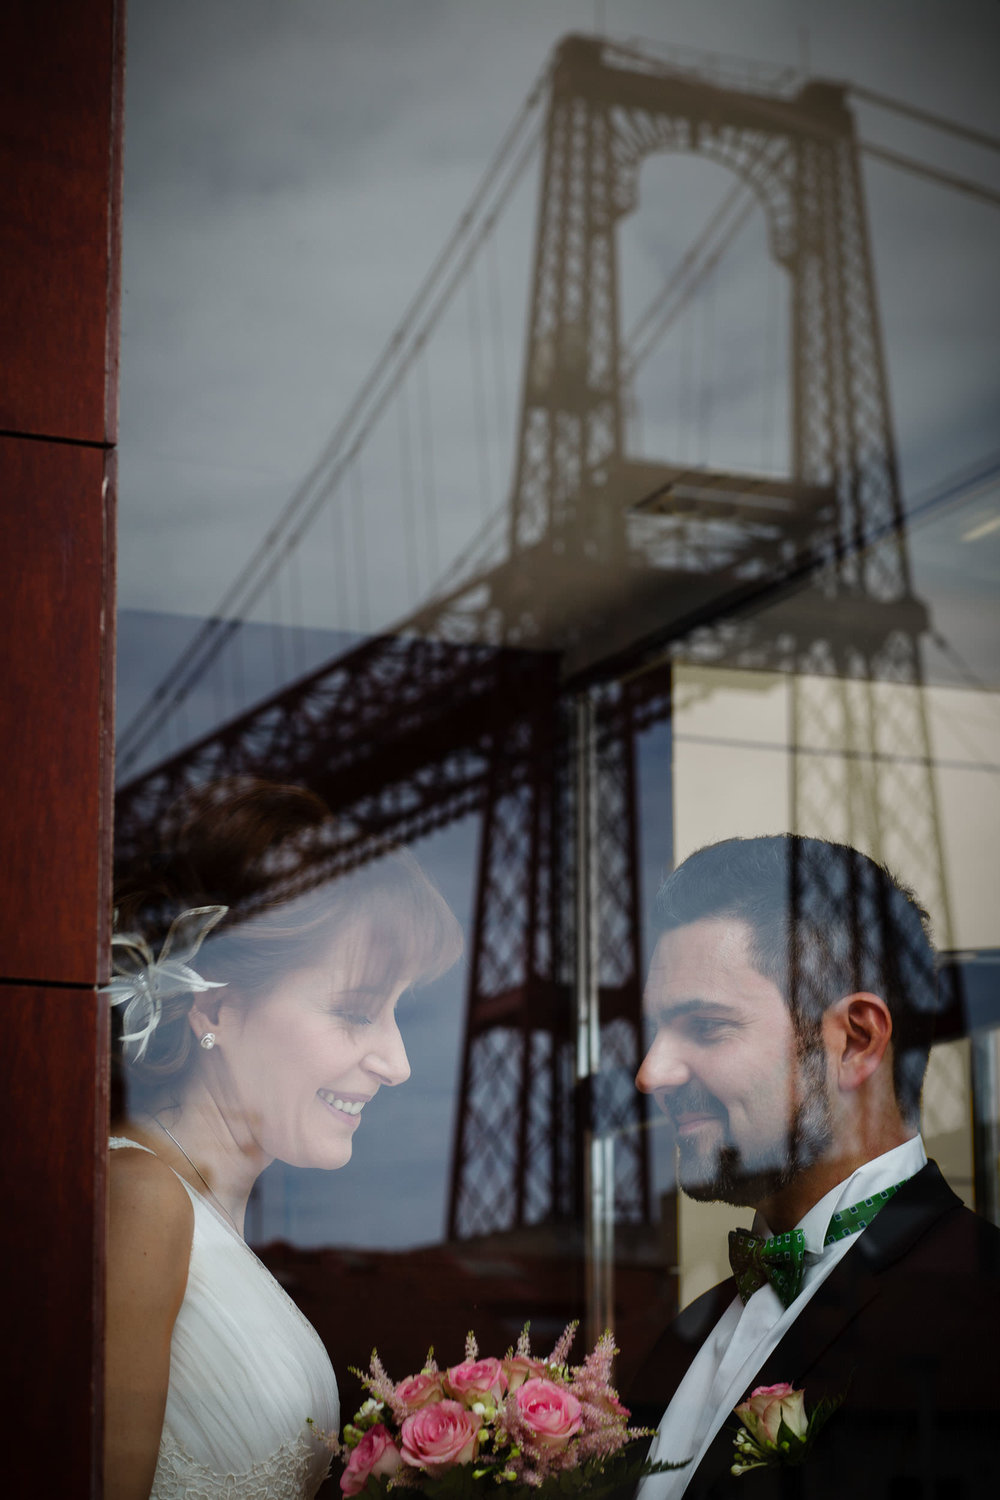 Fotografia Pre-Boda en Portugalete, Basque Country, Spain - James Sturcke  Photographer | sturcke.org_003.jpg